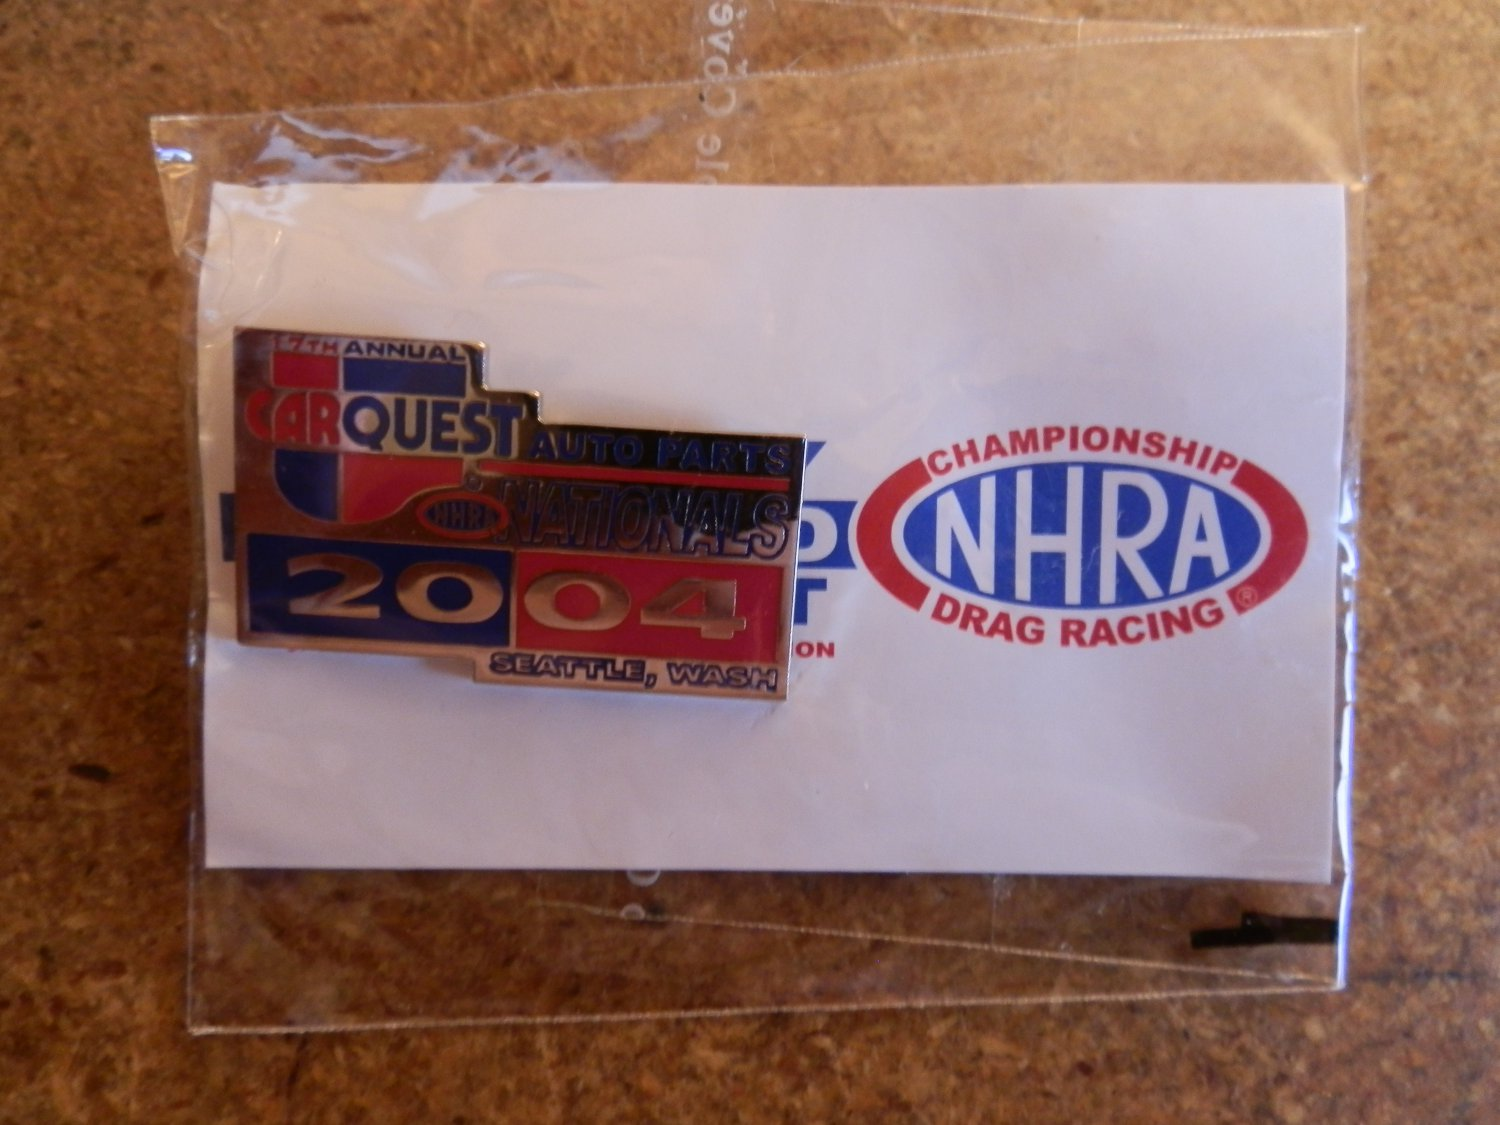 2004 NHRA Event Pin Seattle